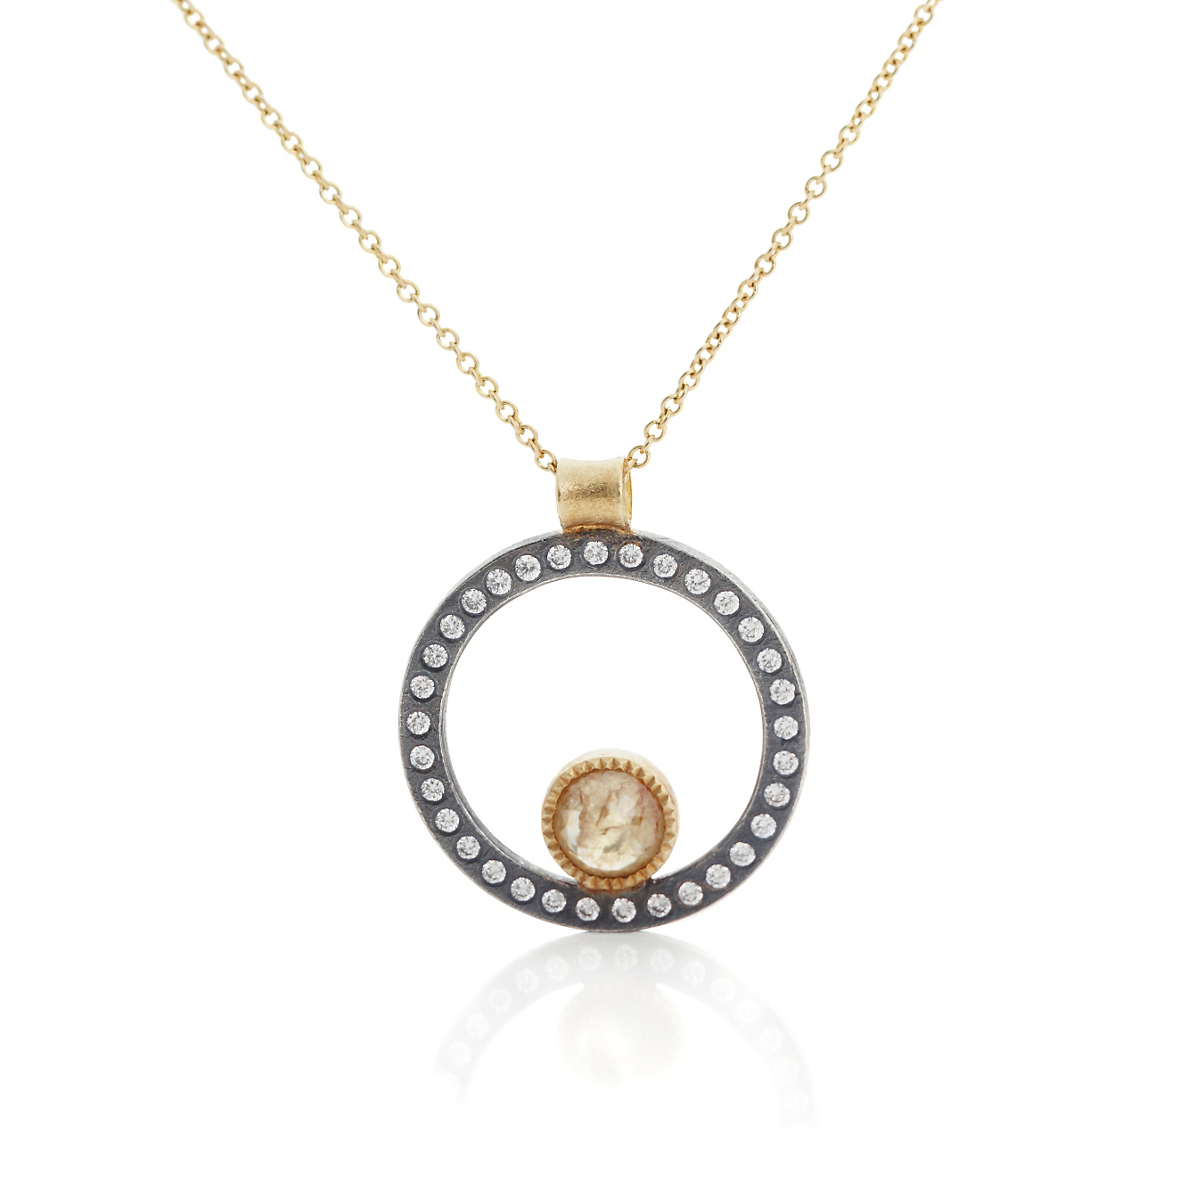 Todd Reed Gold & Oxidized Silver Diamond Pendant Necklace